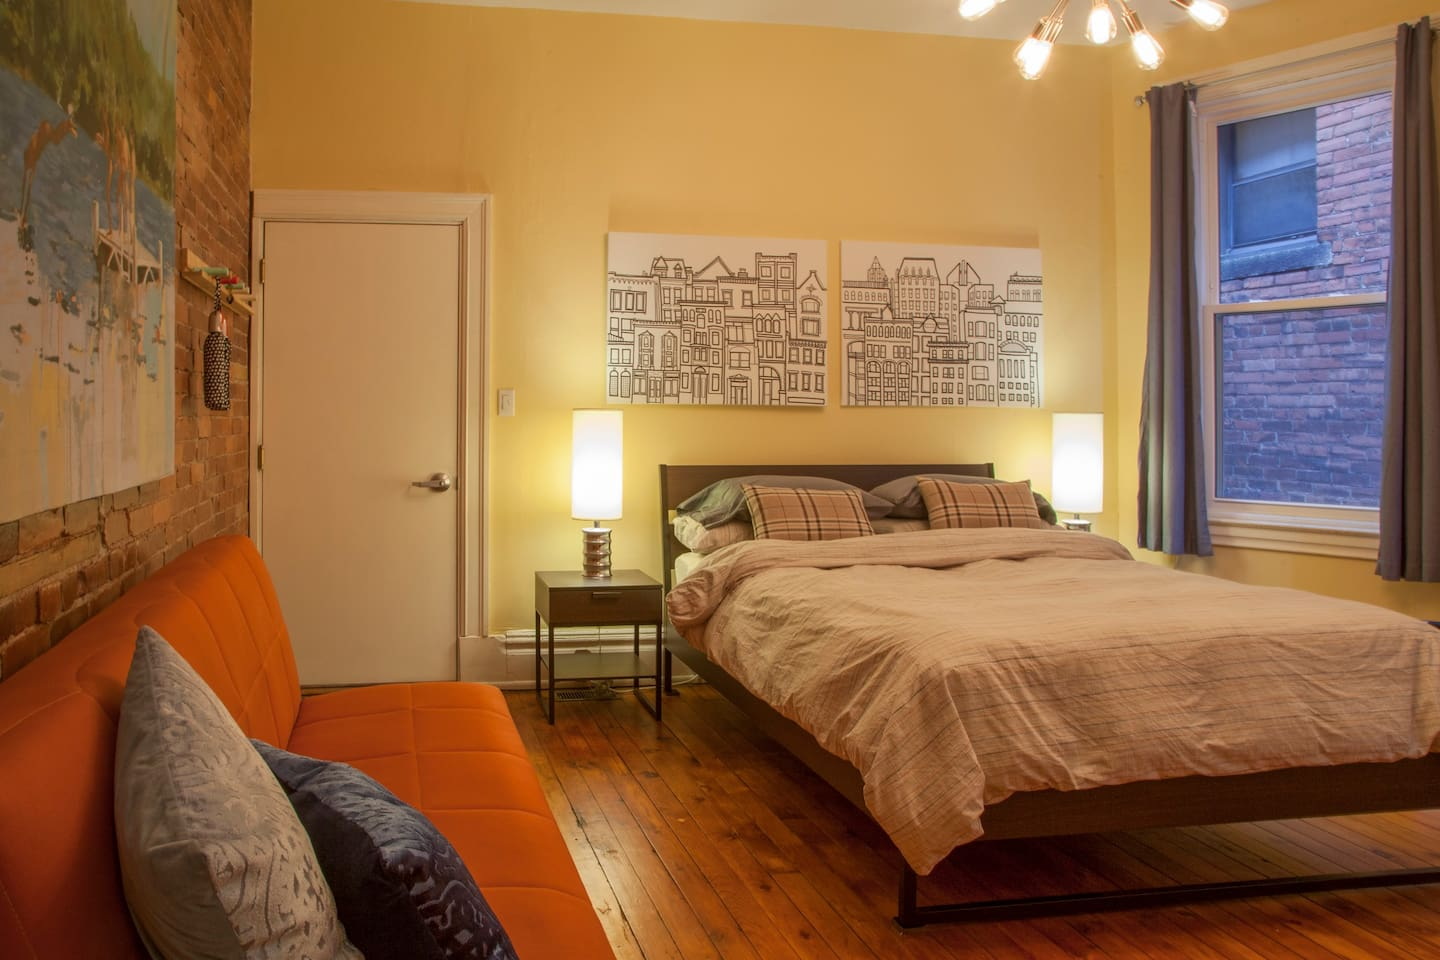 Your comfy, cozy queen bed featuring a brand new Tuft and Needle mattress and comfy pillows.